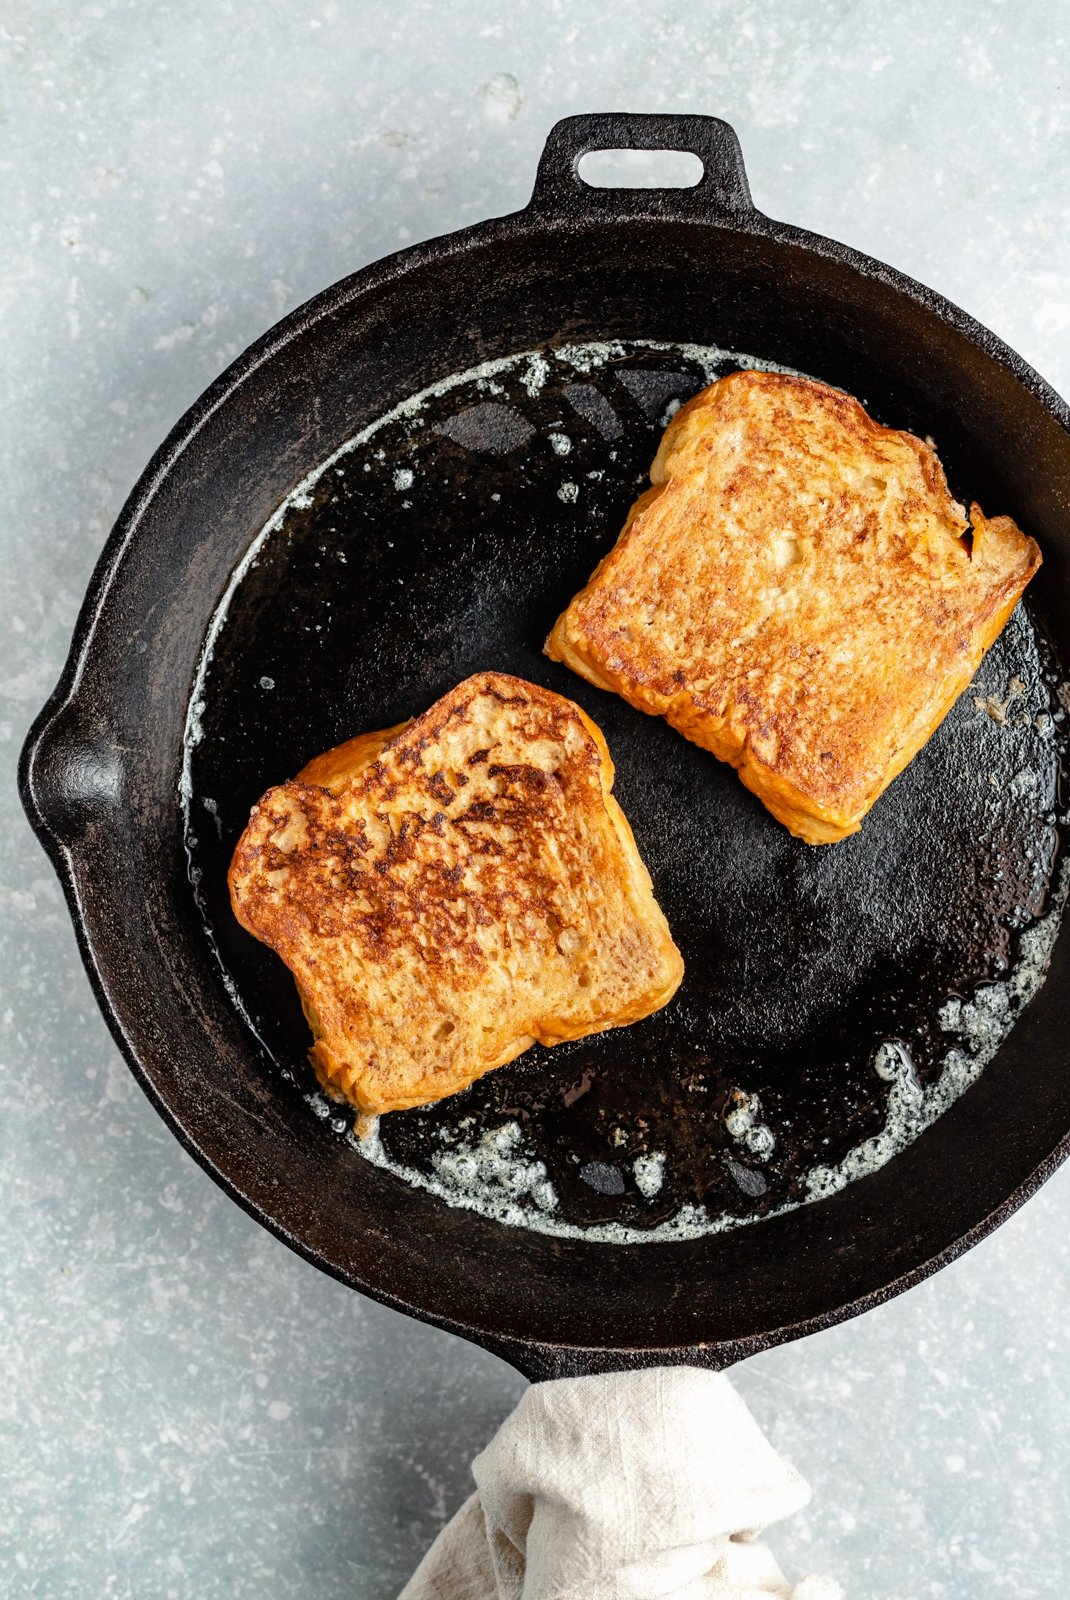 cooking two pieces of healthy french toast in a skillet